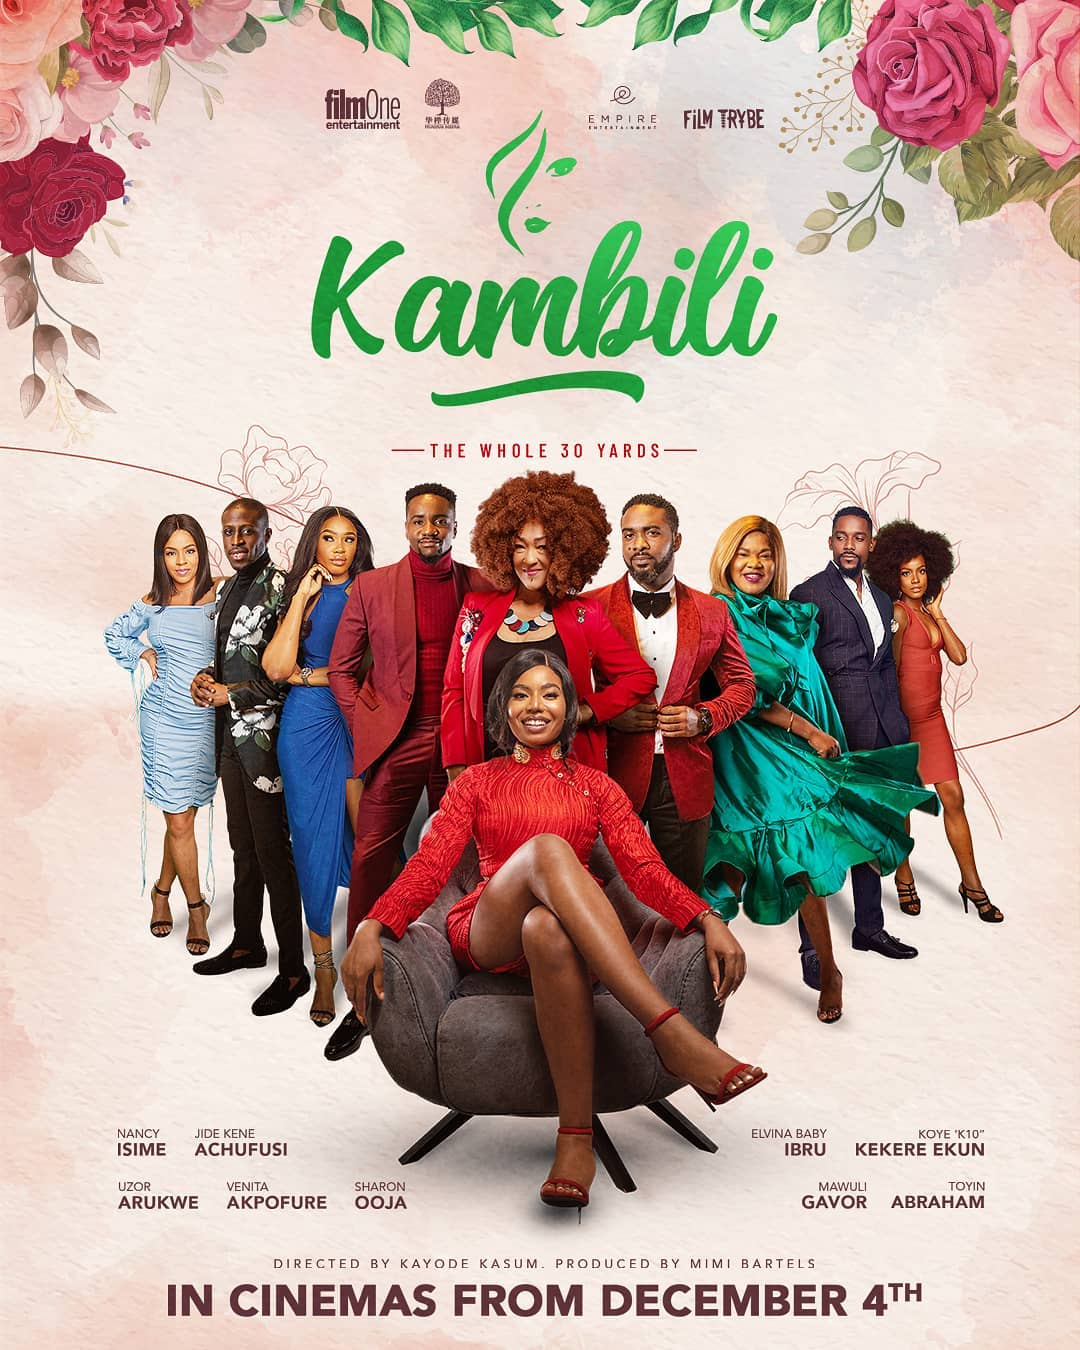 126986673 480165629612794 2853004527851913298 n - 7 Nollywood Titles Set to Clash For Box Office December 4th & 11th 2020